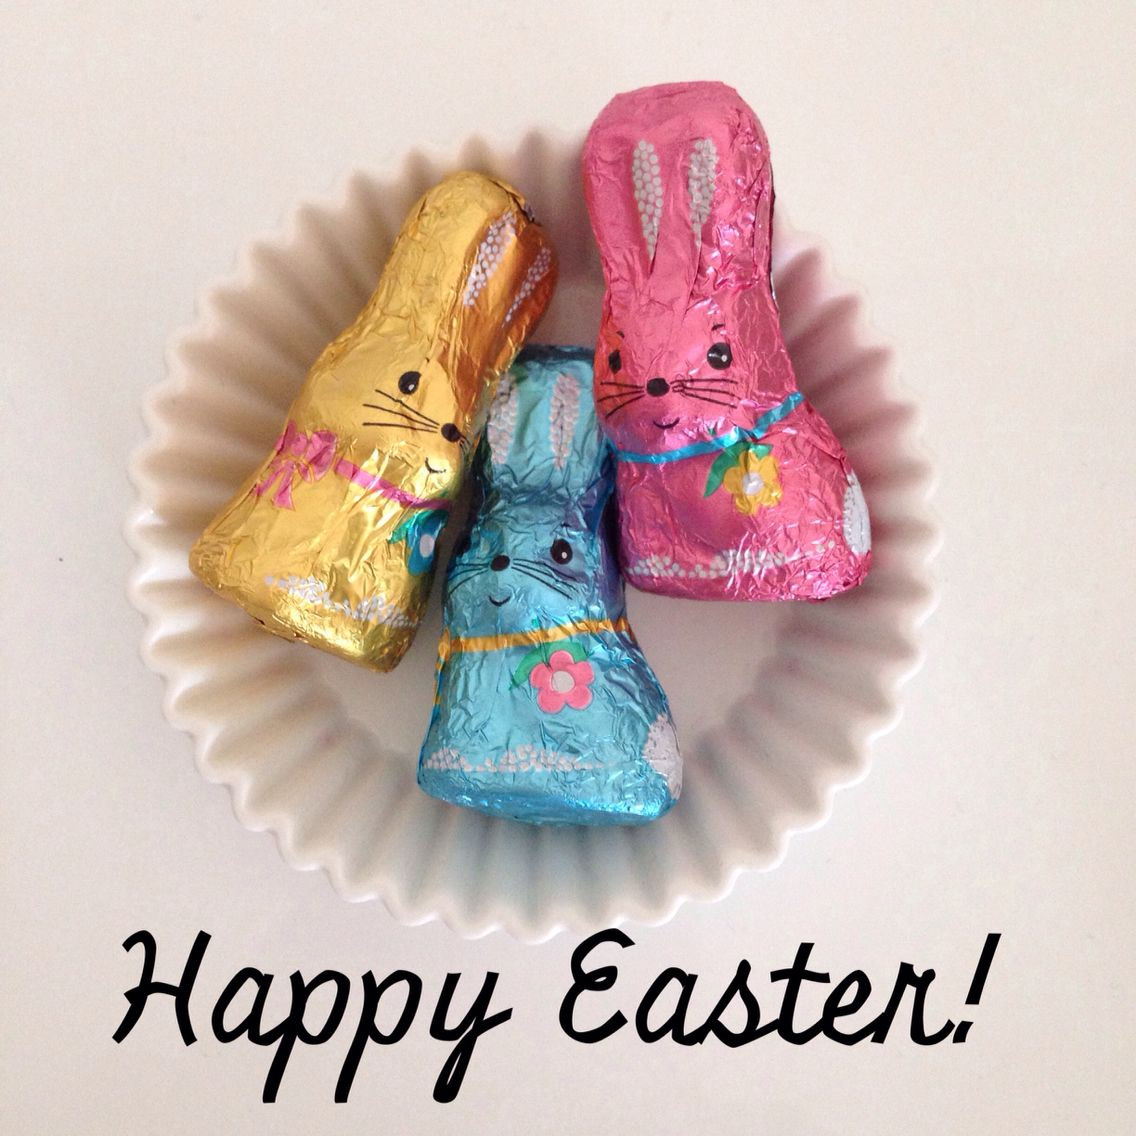 Happy Easter! Elderly person, Happy easter, Caring company